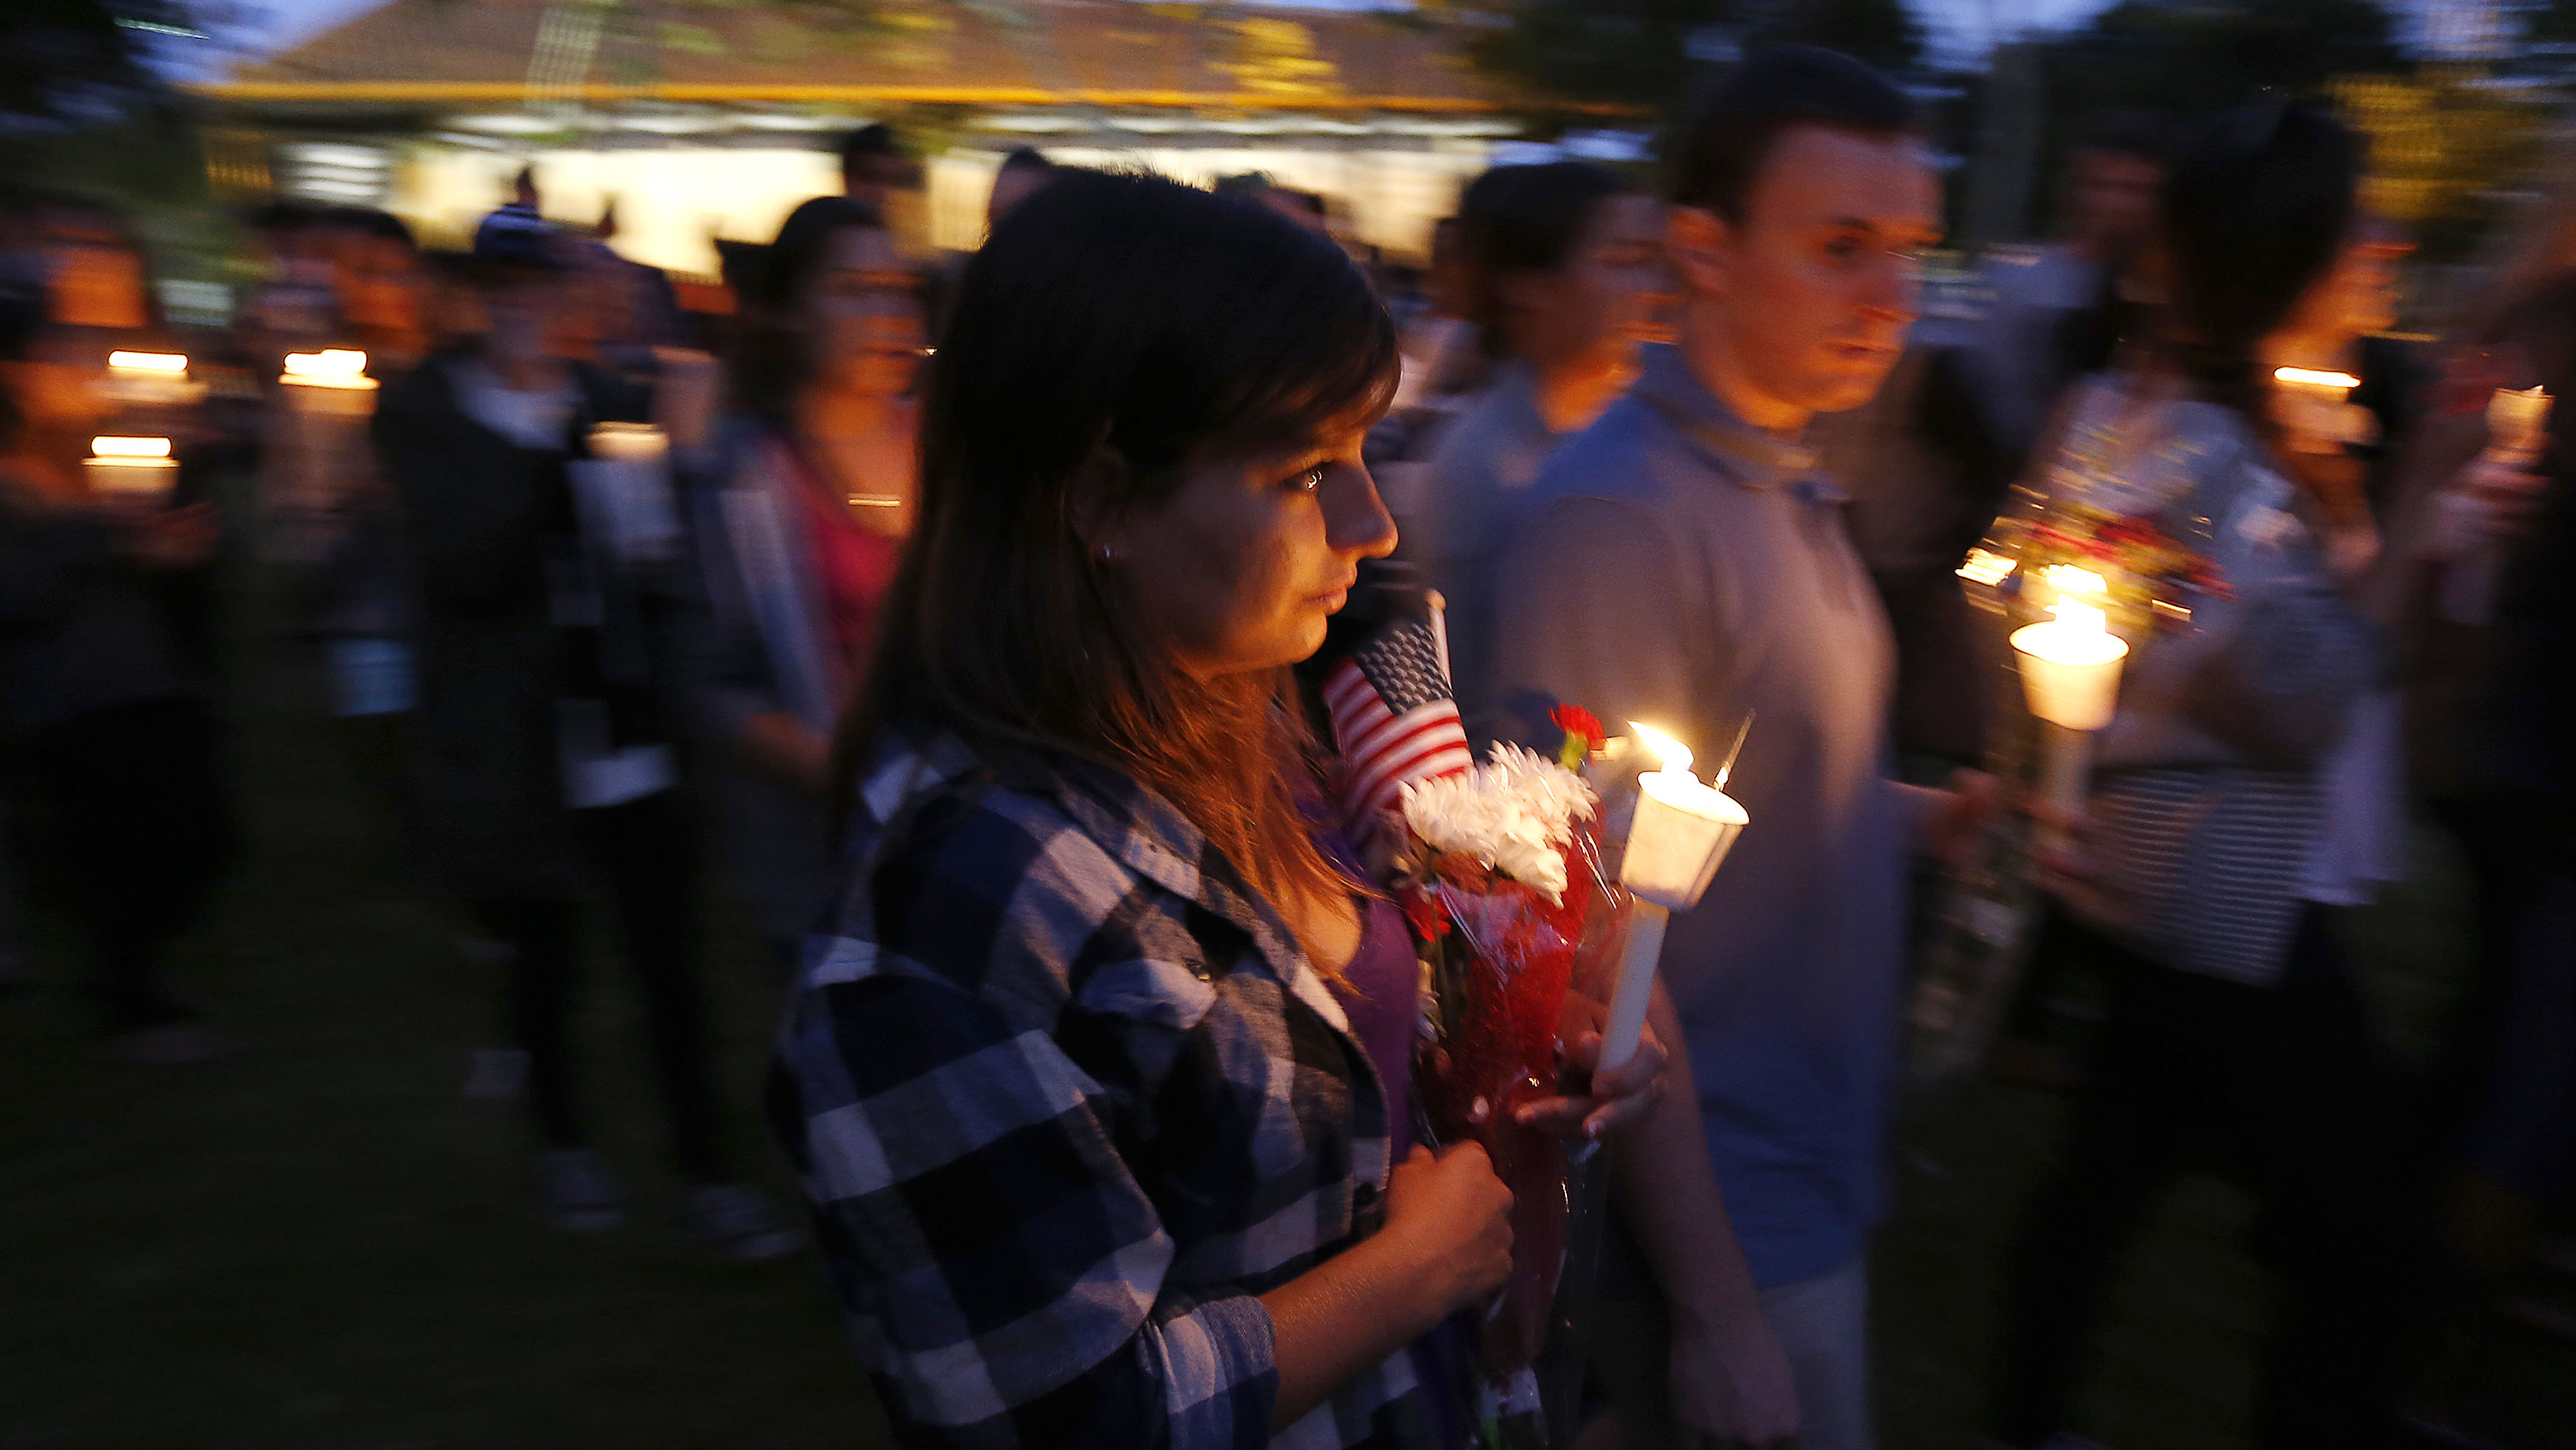 UC Santa Barbara students attend a candlelight march and vigil following Friday's series of drive-by shootings that left seven people dead in the Isla Vista section of Santa Barbara May 24, 2014. A lone gunman sprayed bullets from a car in a drive-by shooting in a southern California college town, killing at least six people before his car crashed and he was found dead inside, authorities said on Saturday. REUTERS/Jonathan Alcorn